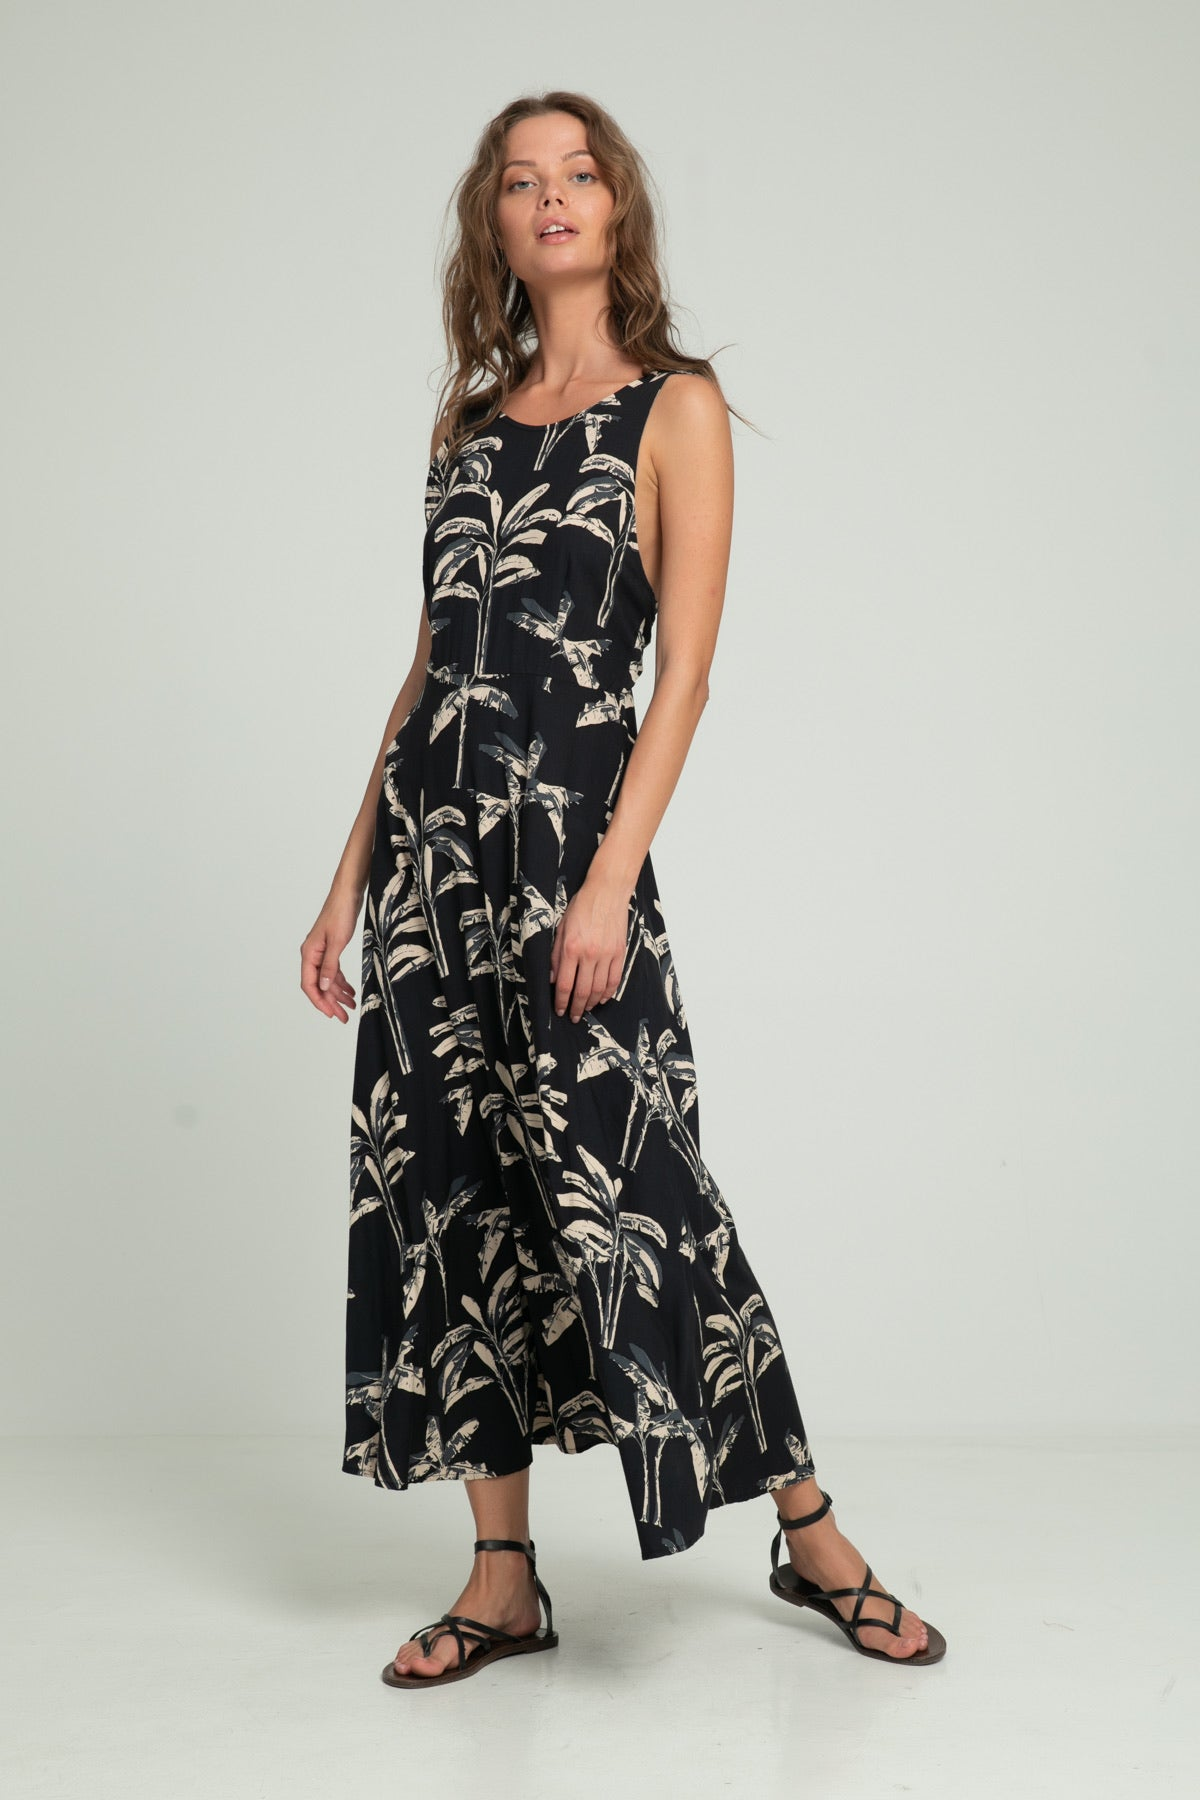 Waimea Maxi Dress - Black Banana Leaf Print